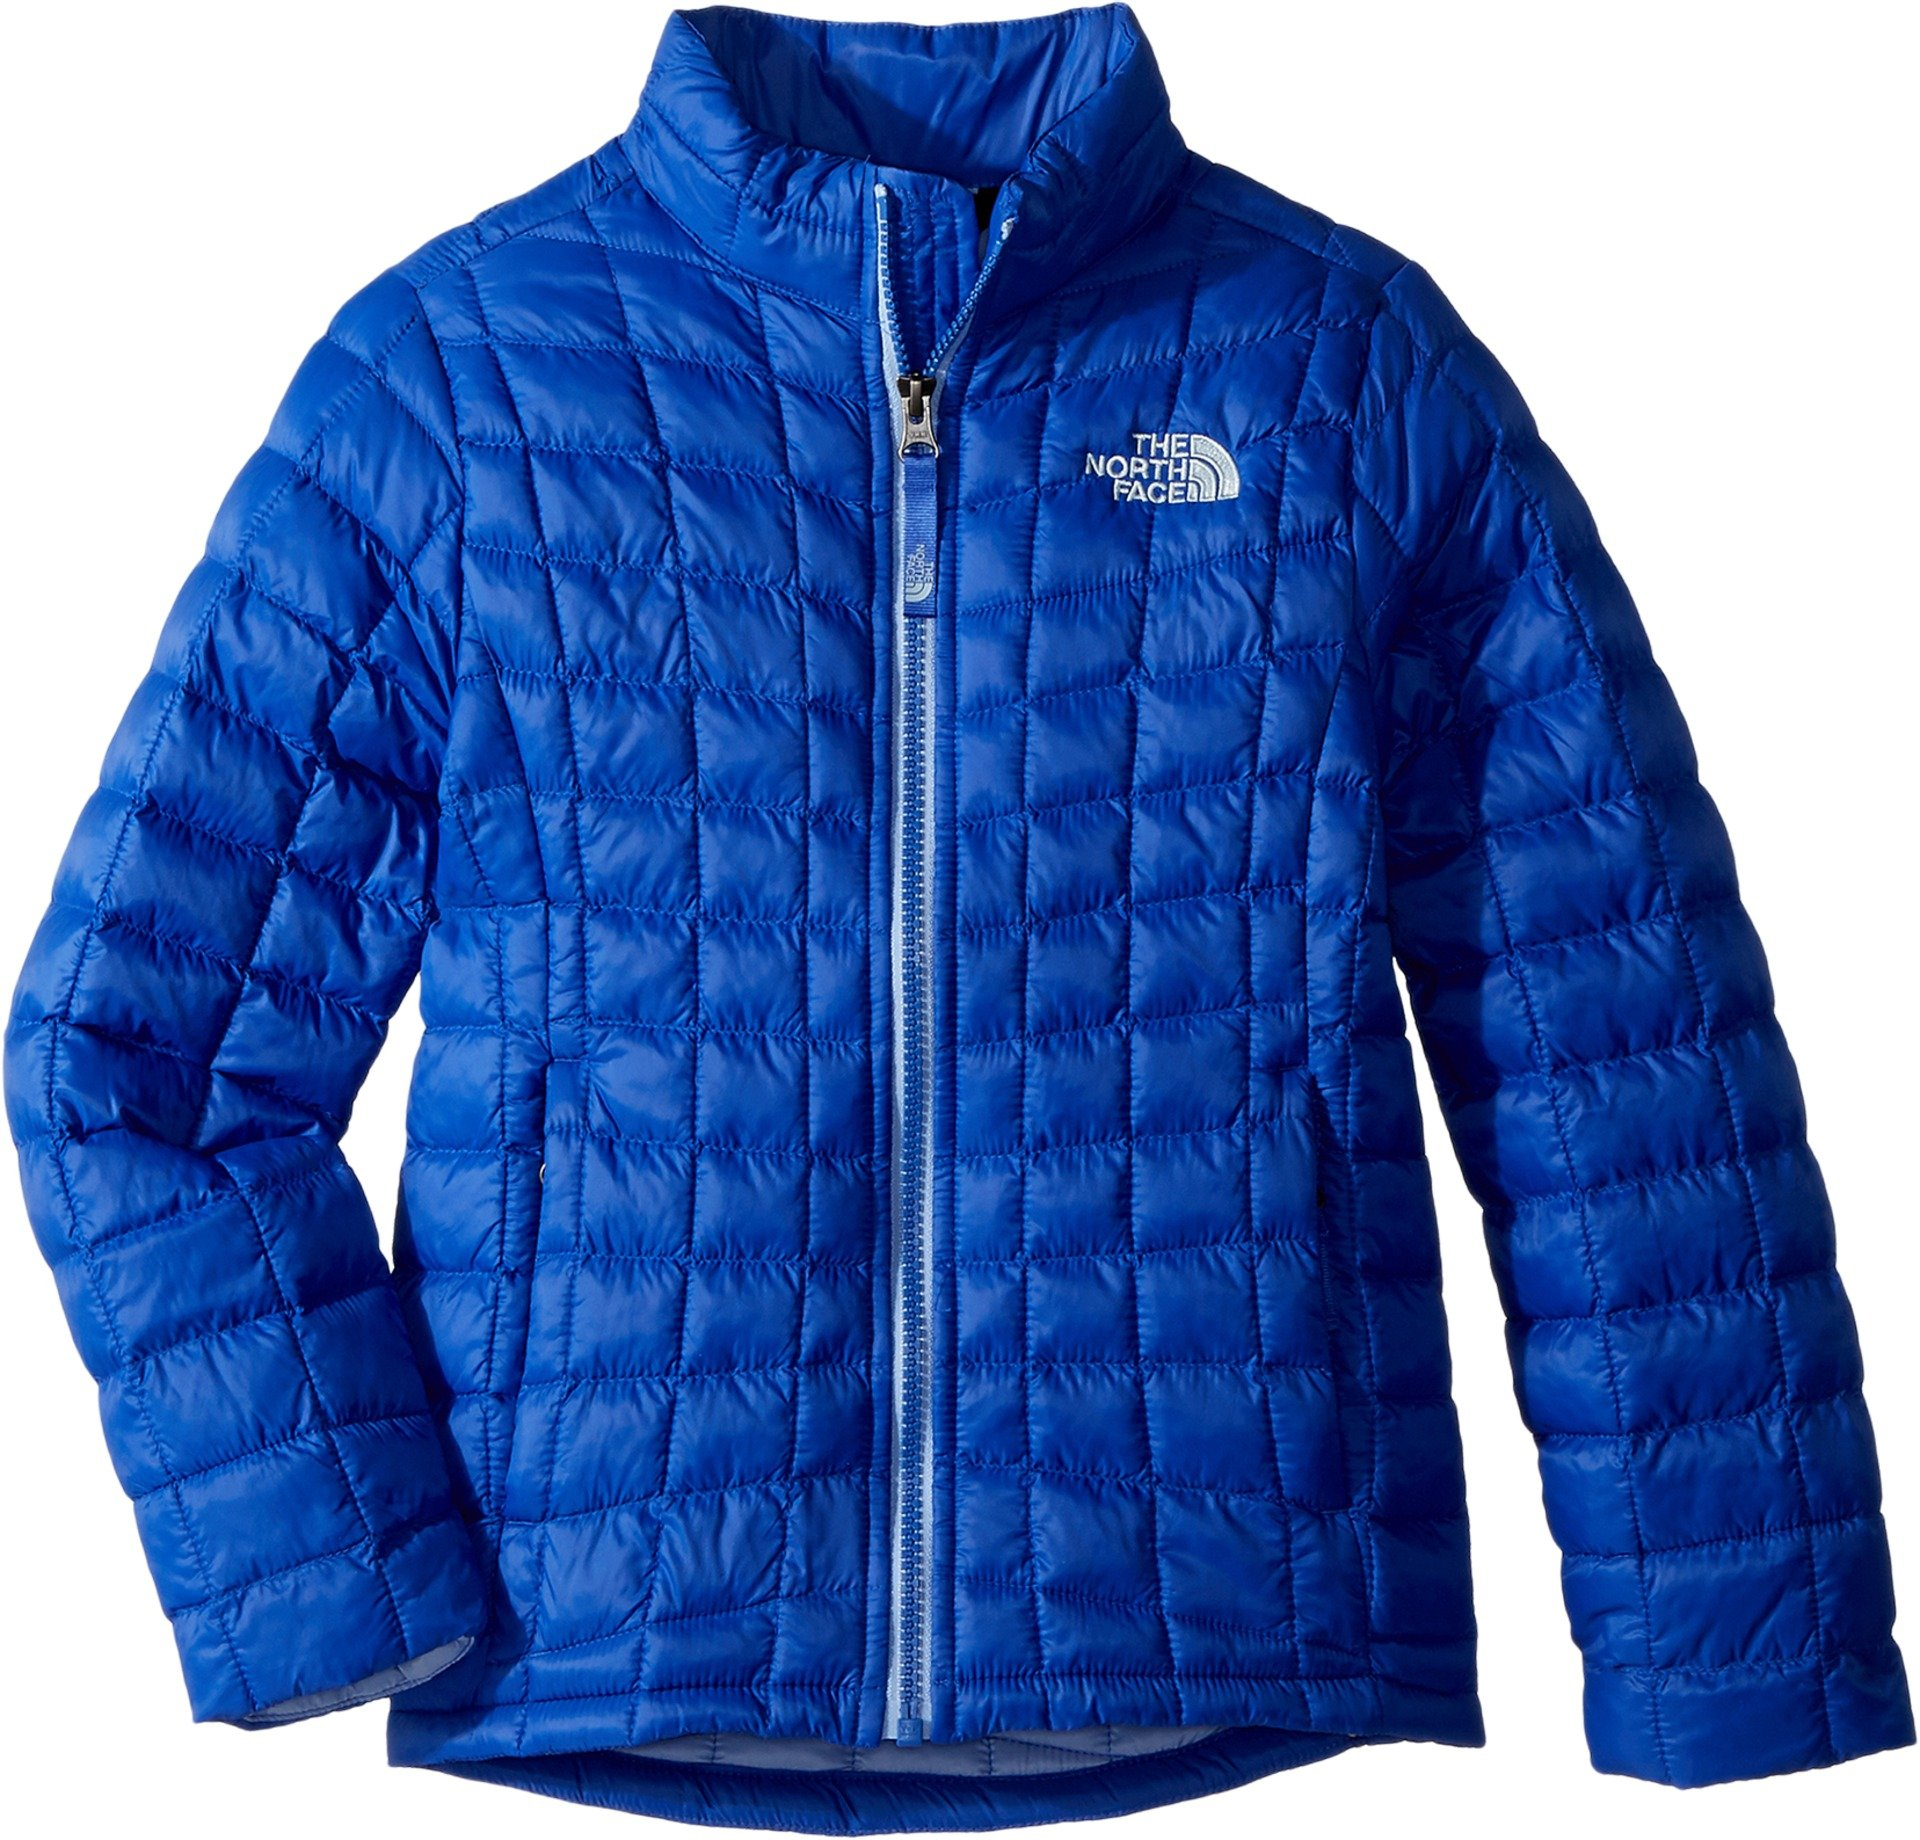 The North Face Kids Girl's Thermoball Full Zip (Little Kids/Big Kids) Dazzling Blue/Collar Blue Large by The North Face